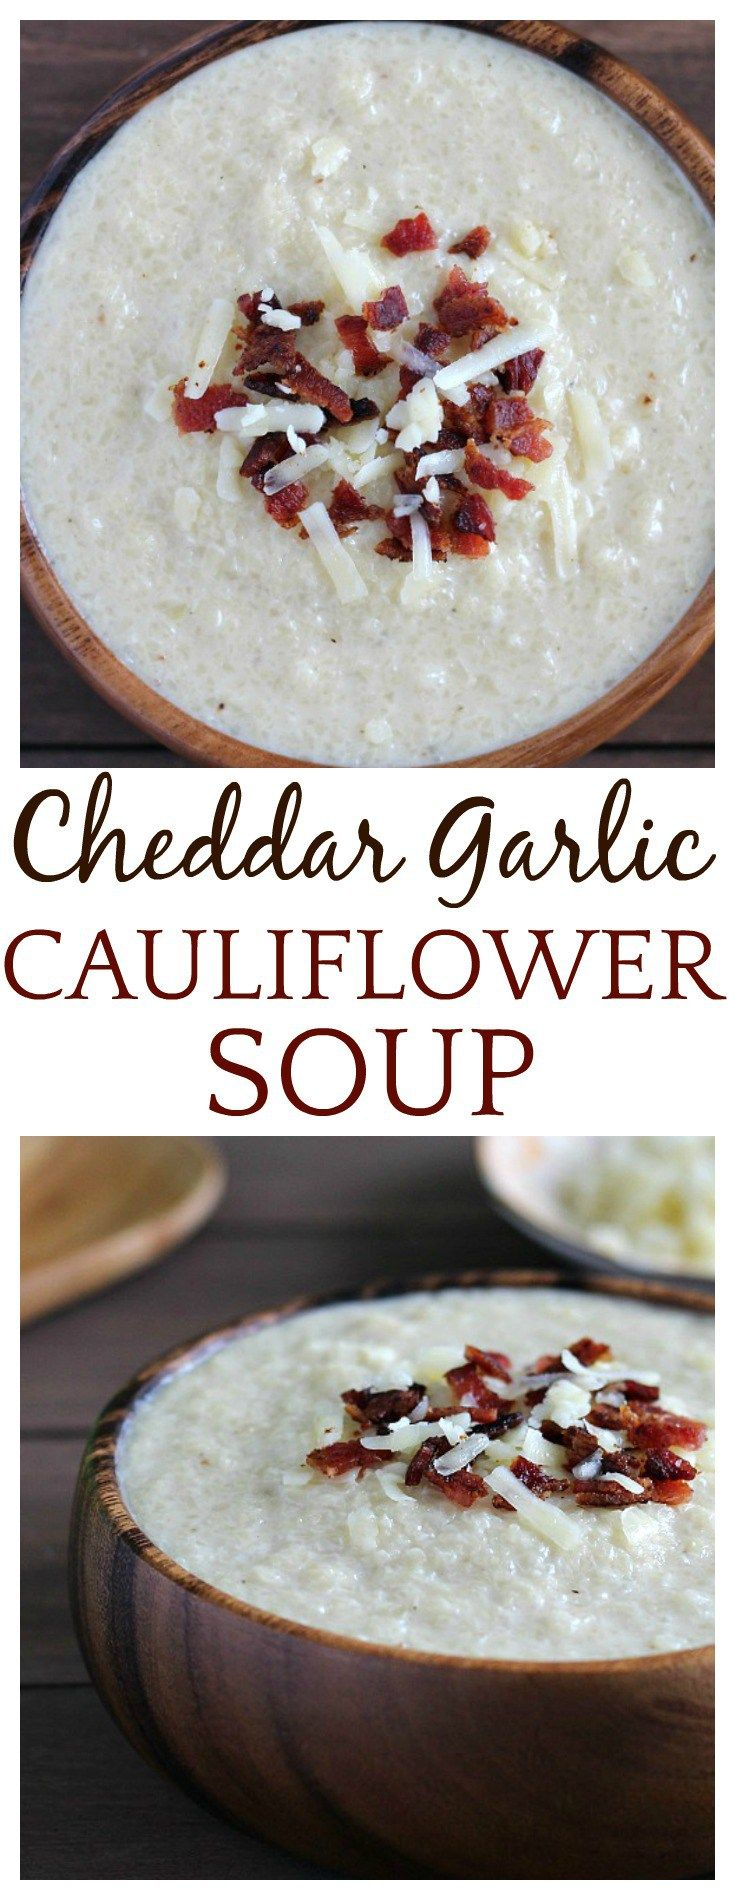 This low-carb White Cheddar Garlic Cauliflower Soup will keep you warm all season! This is a vegetarian soup recipe as written. It can also be made gluten free simply by using an all purpose gluten free flour as a thickener.